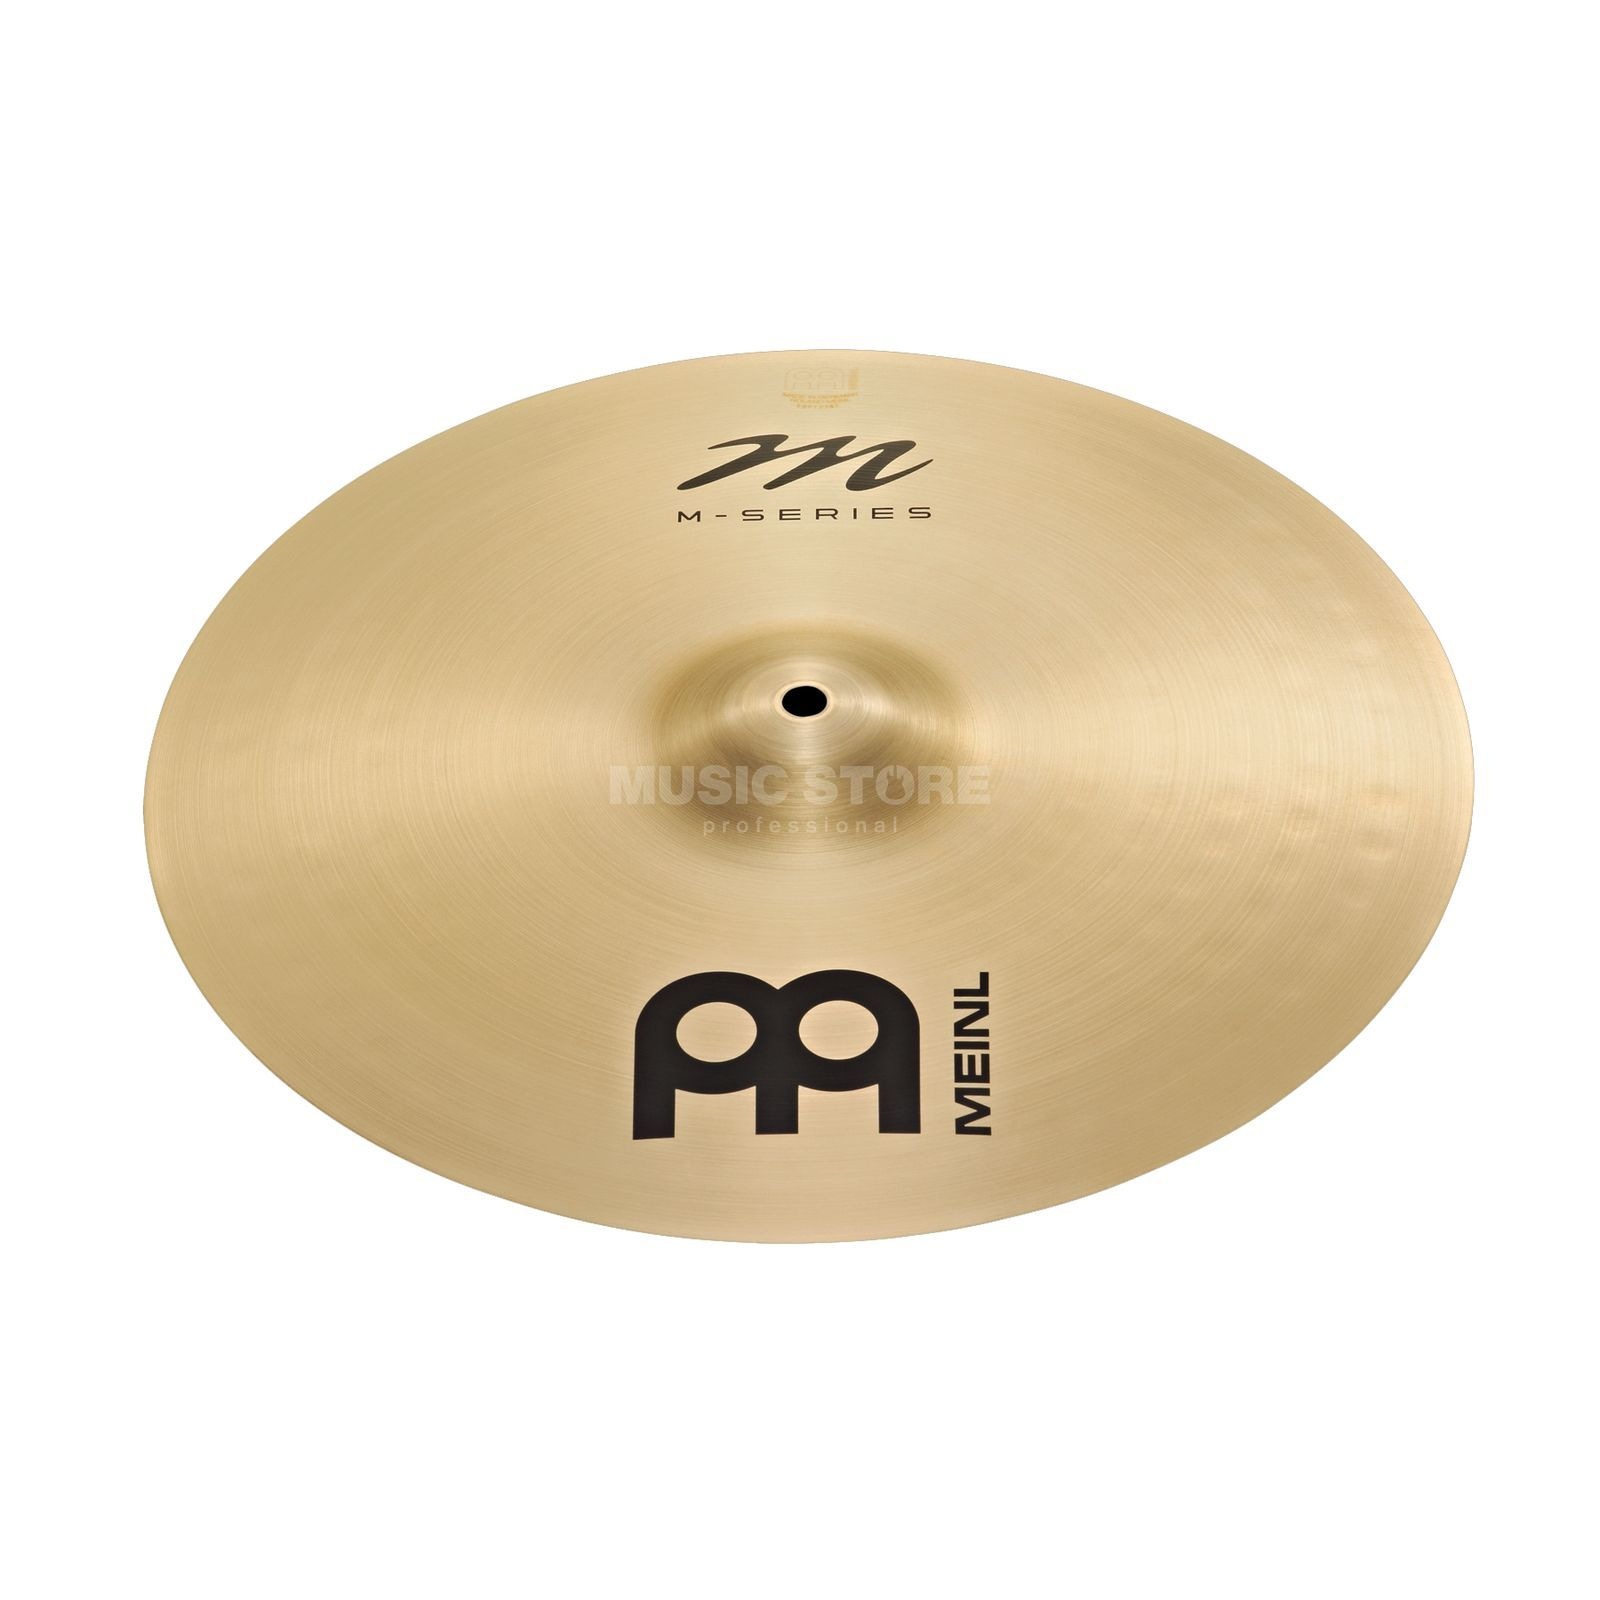 Meinl M-Series Heavy Crash MS16HC, Overstock Product Image